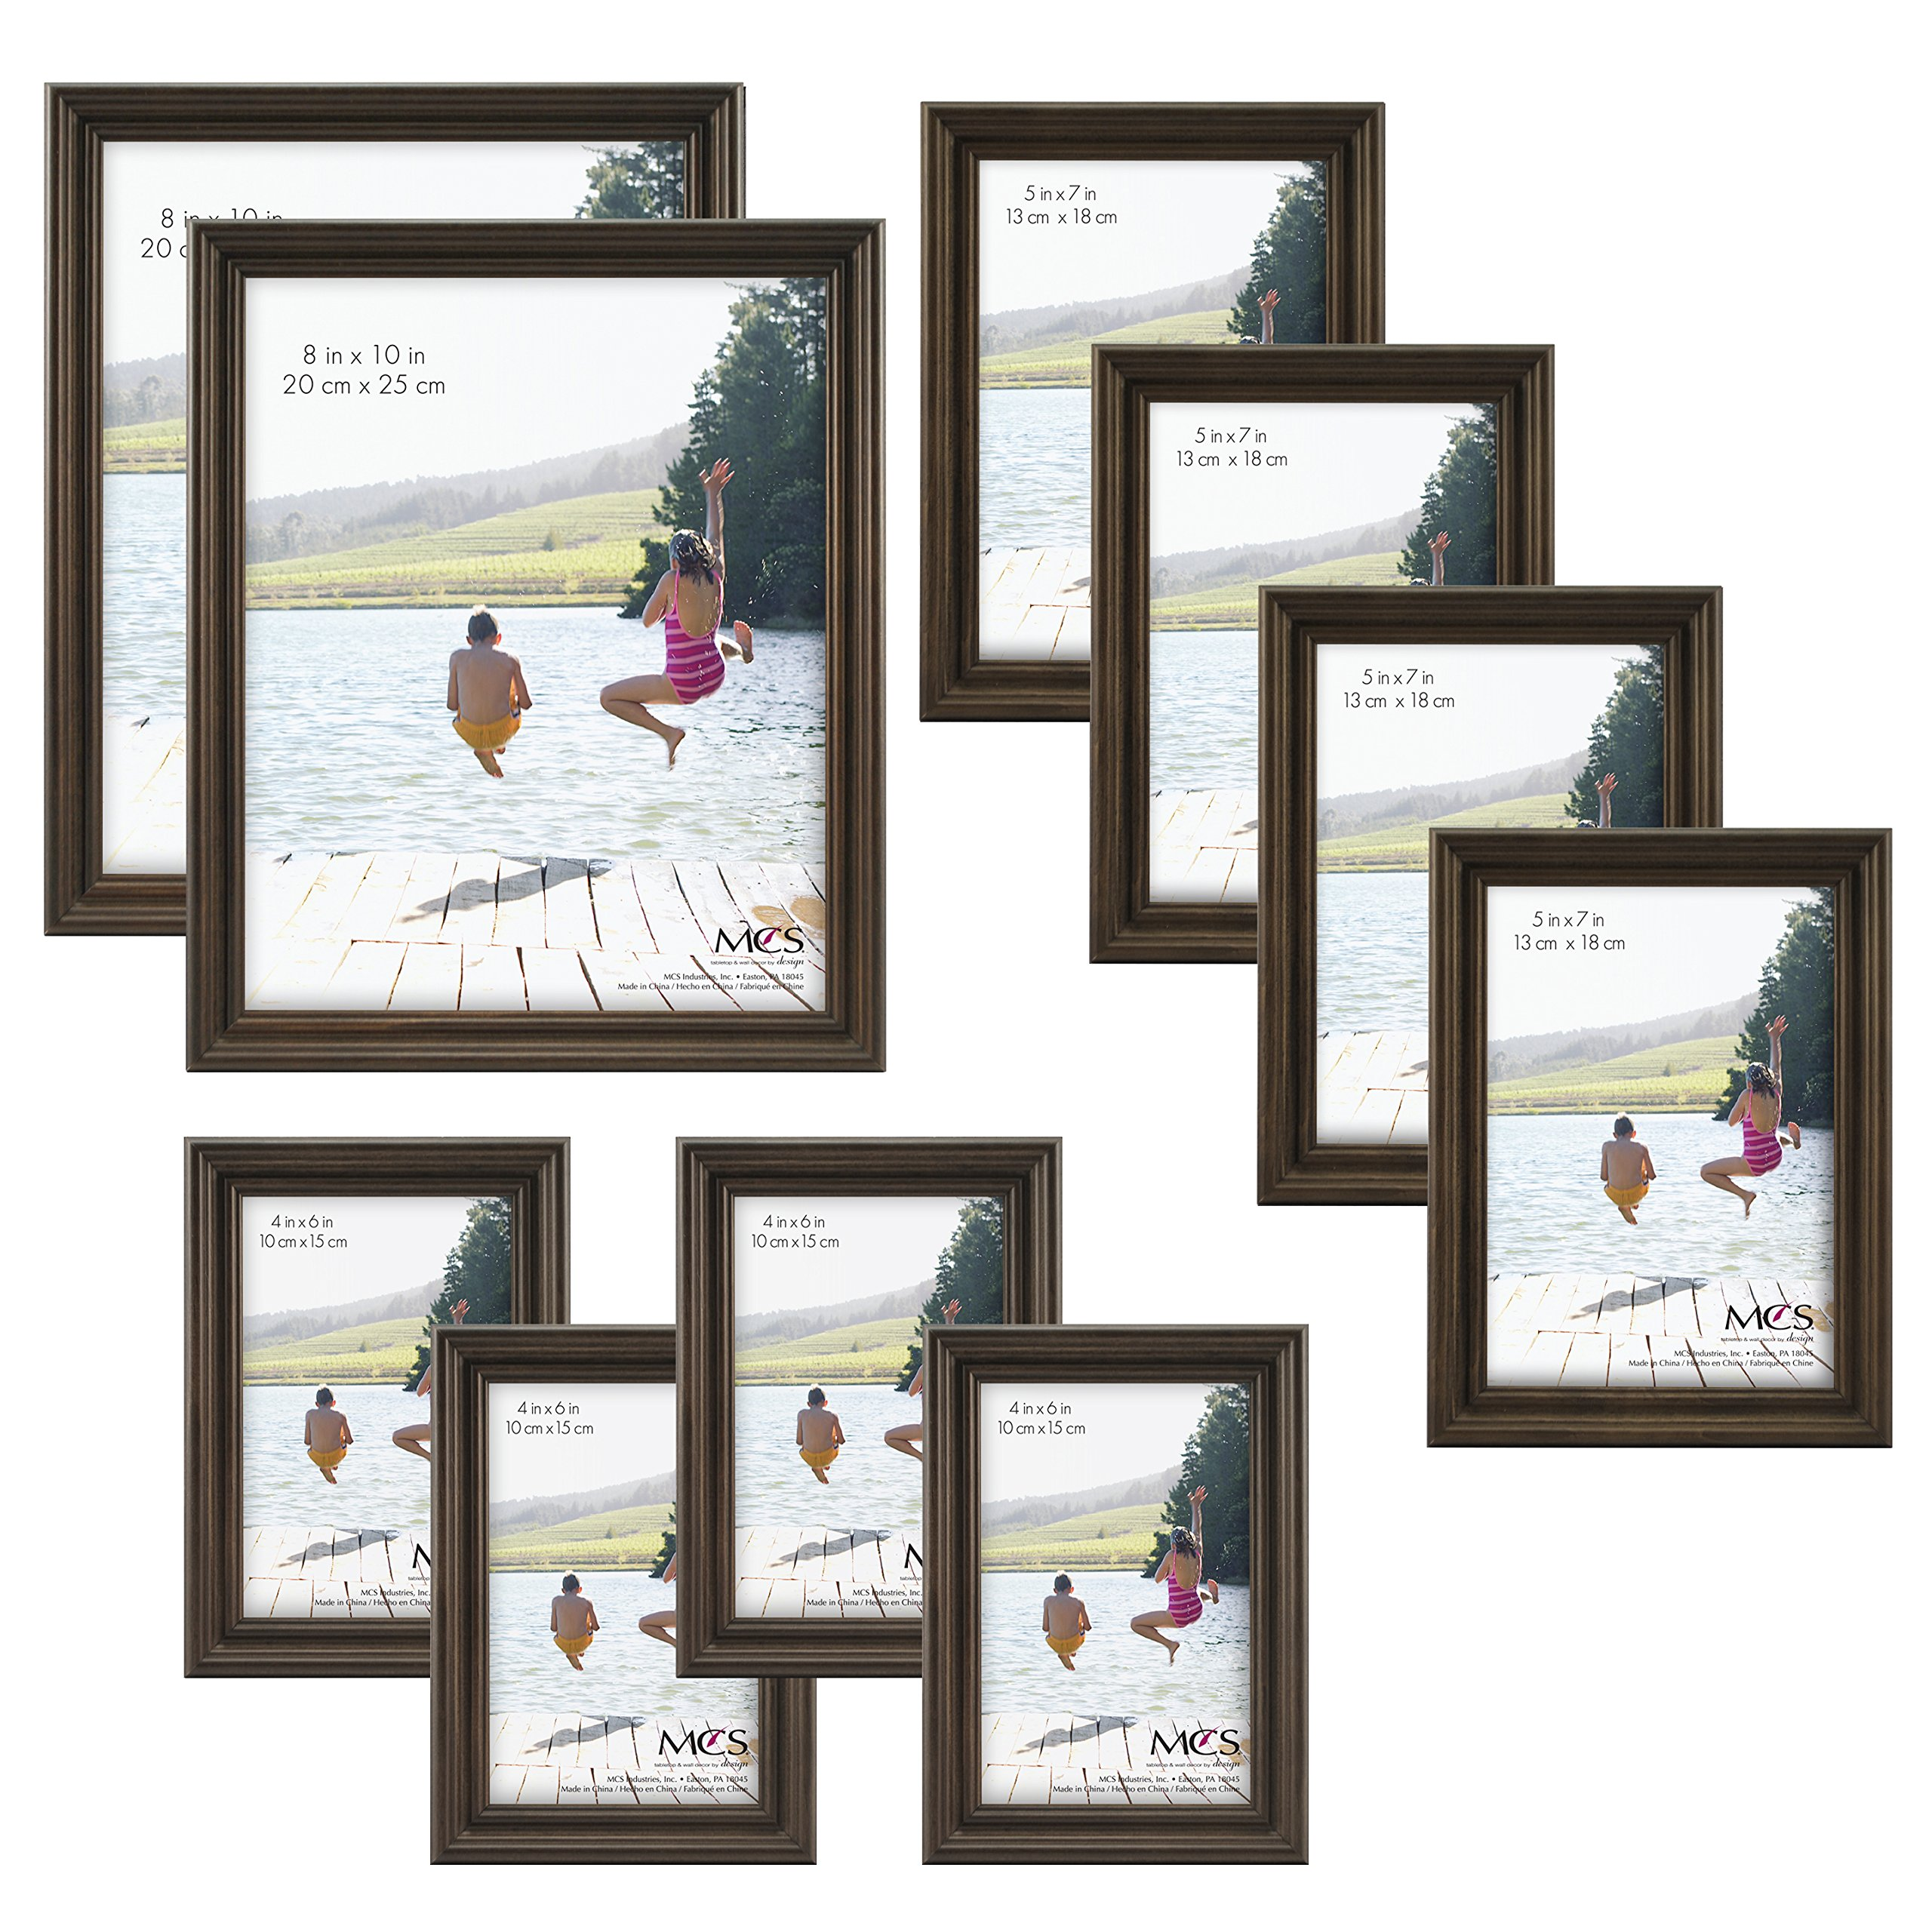 MCS  10pc Picture Frame Value Set - Two 8x10 in, Four 5x7 in, Four 4x6 in, Antique Pine Stain (65706) by MCS